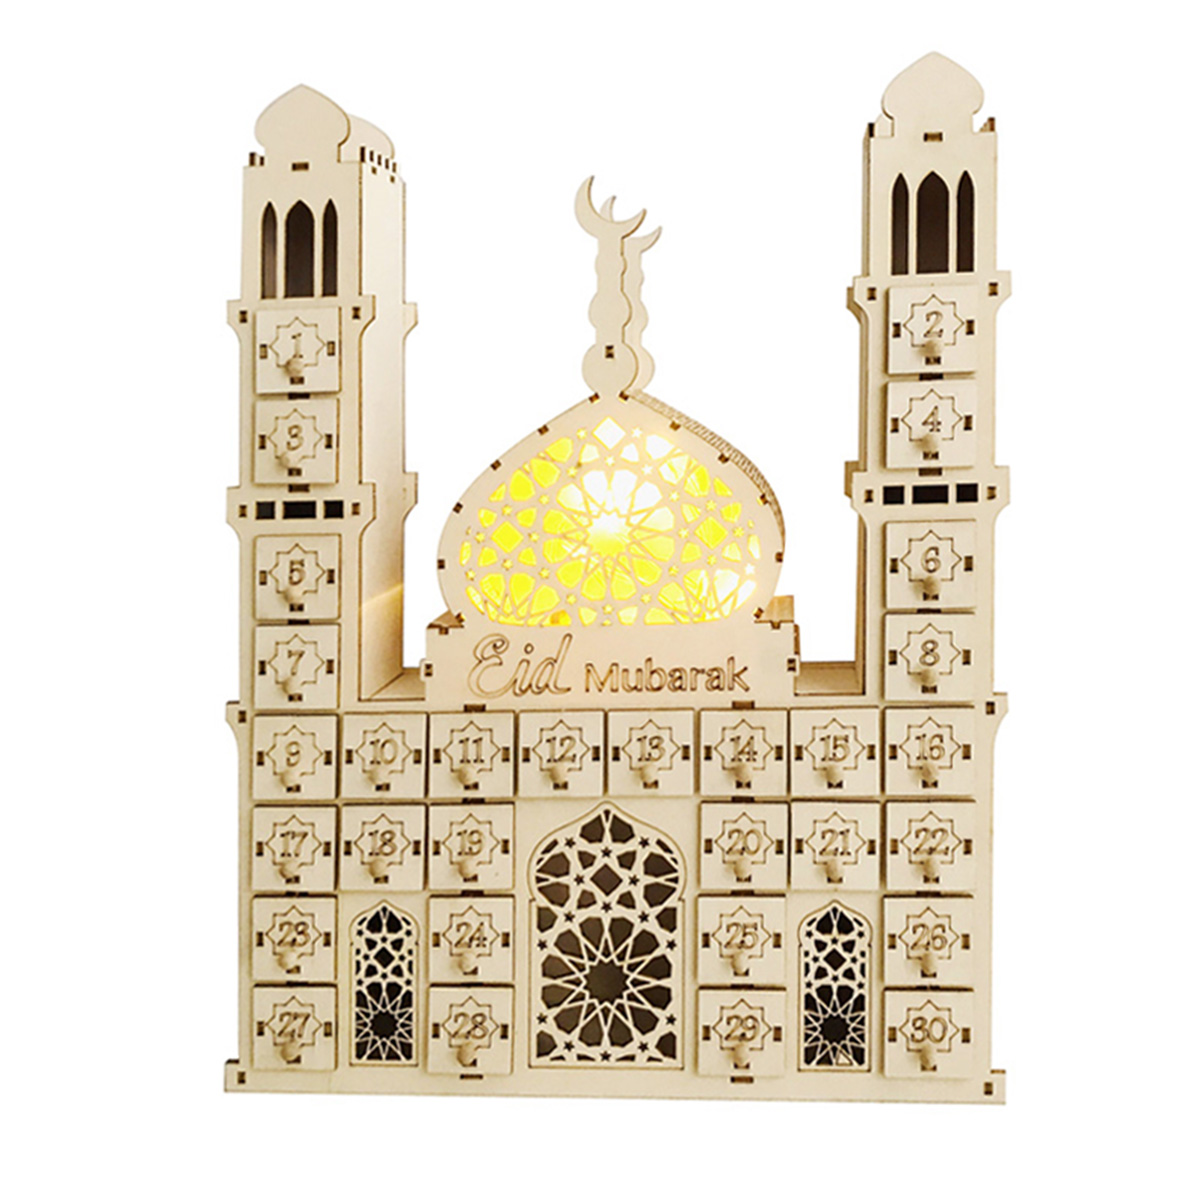 Islam Ramadan Countdown to EID Mubarak Advent Wooden Hanging Plaque Message Board Home DIY Crafts Party Supplies KUKALE Ornament